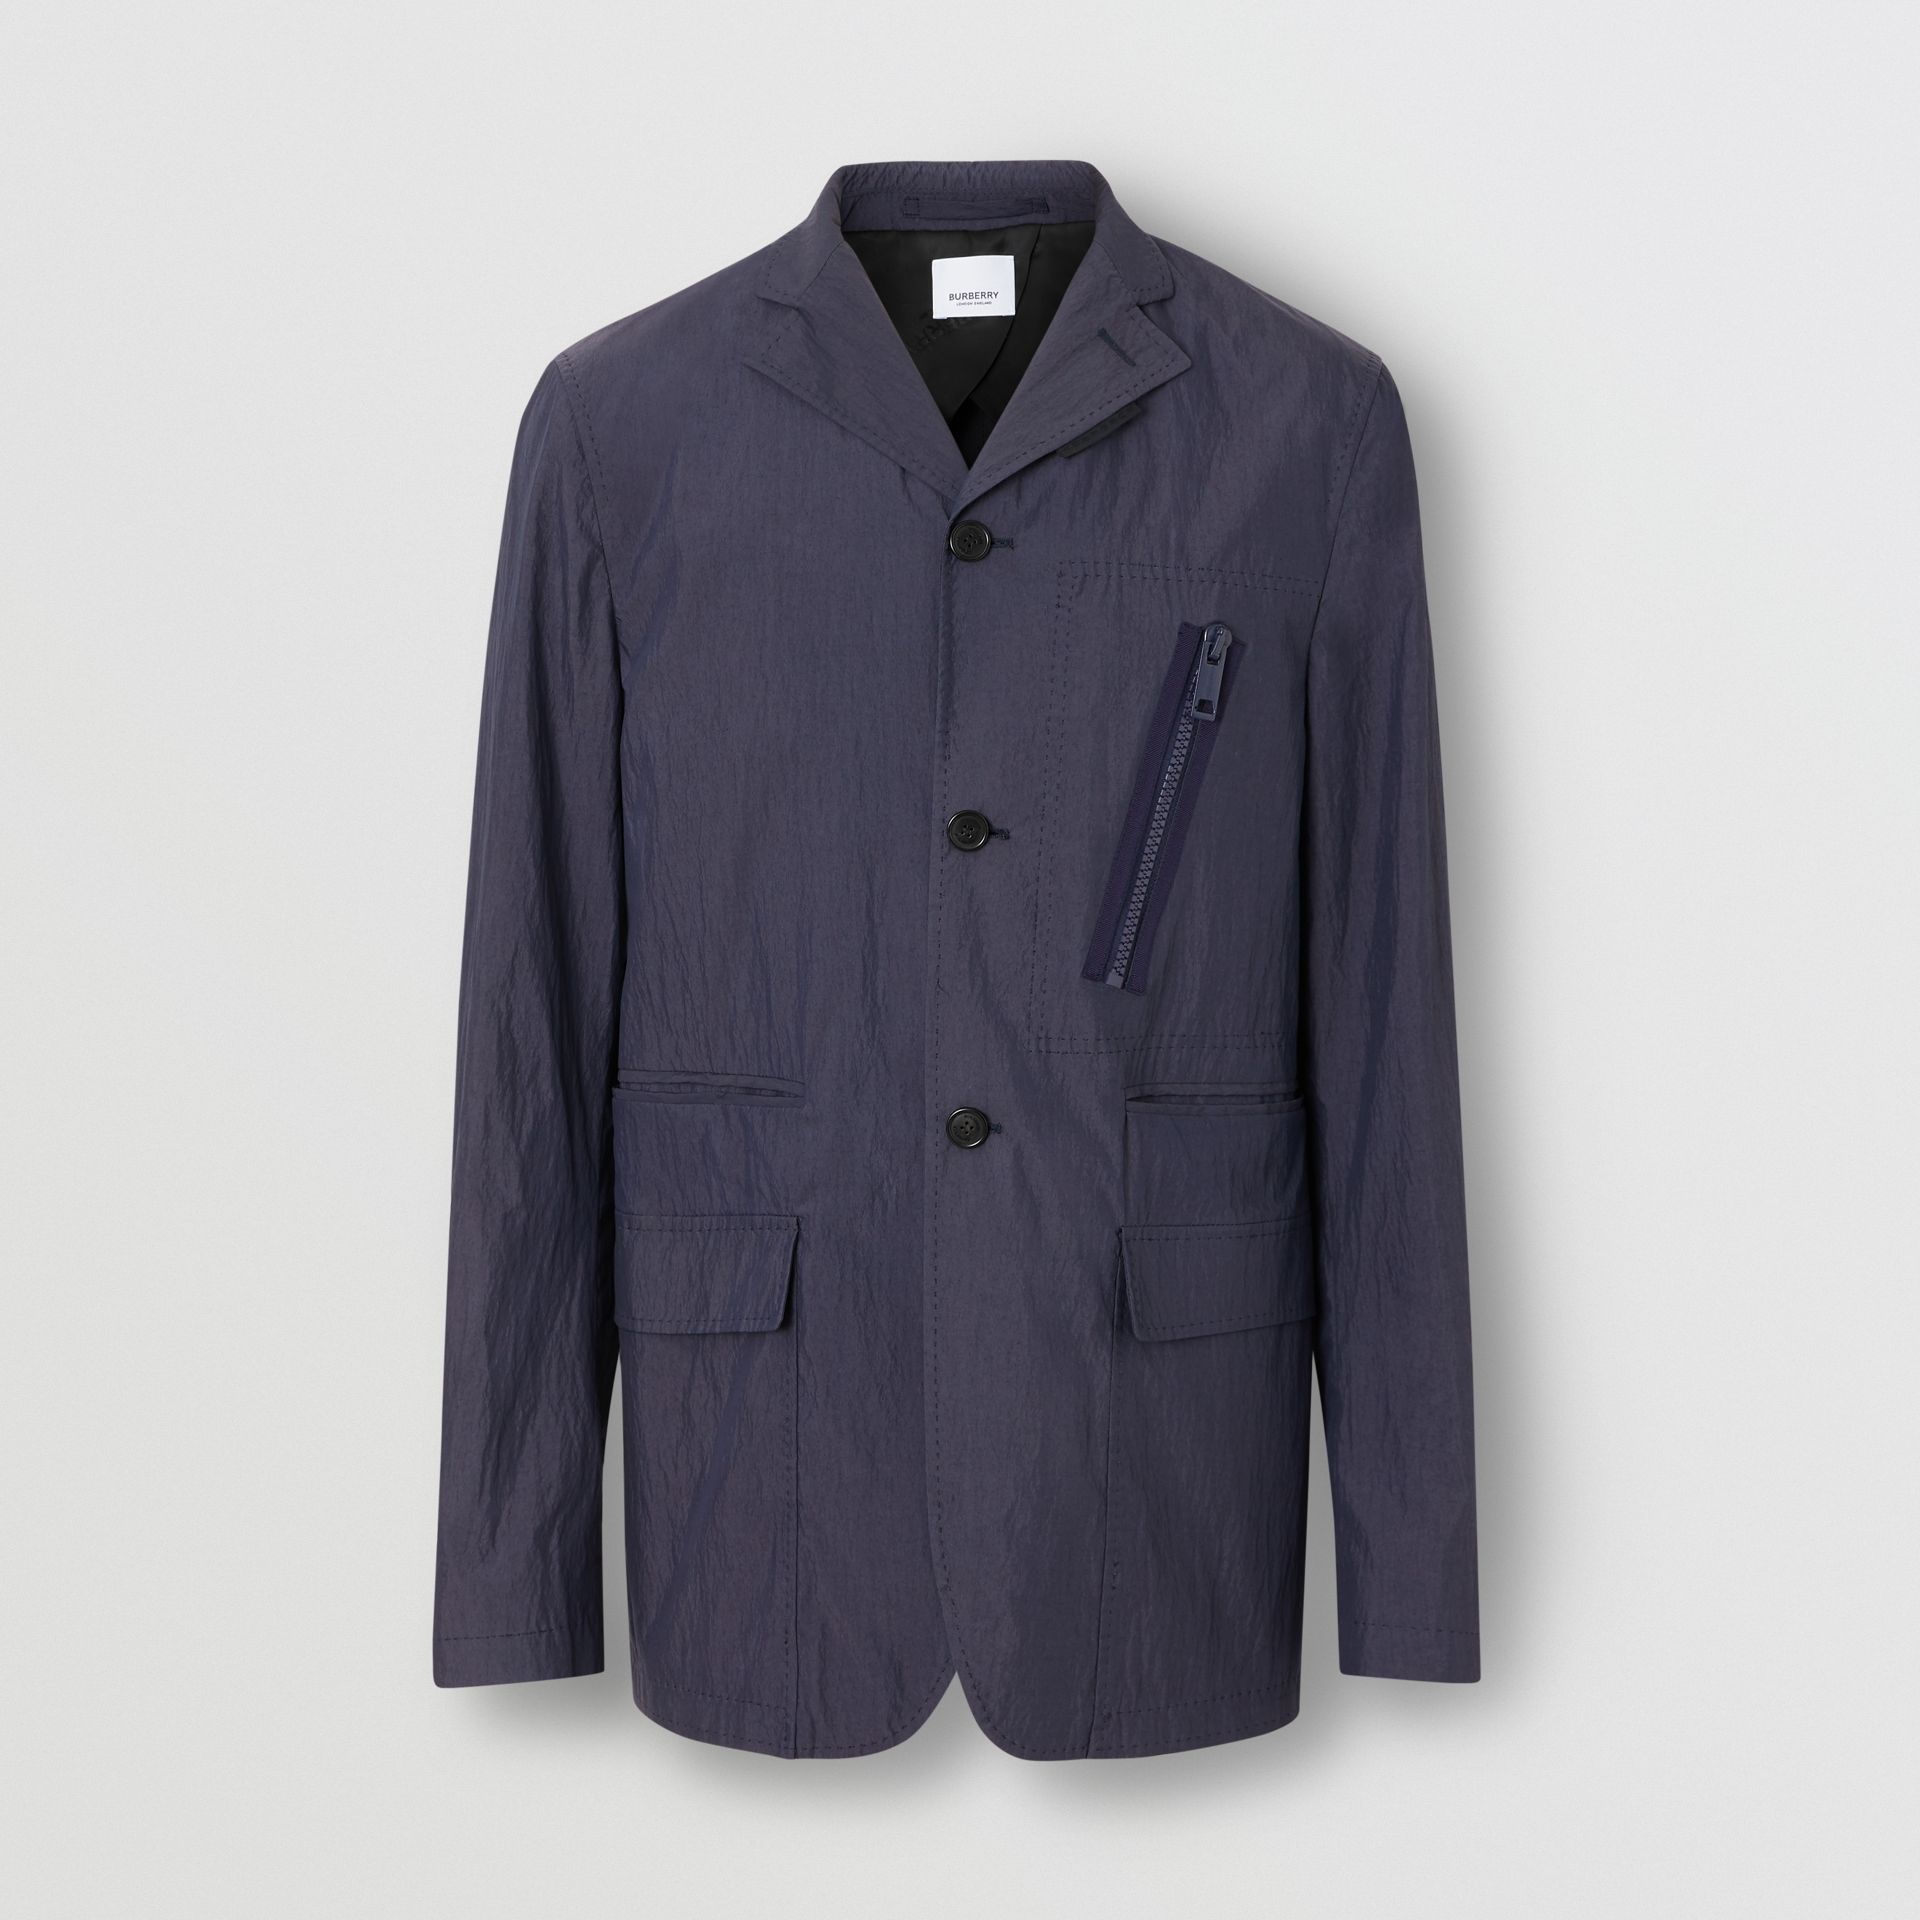 Crinkled Cotton Blend Tailored Jacket in Navy - Men | Burberry Canada - gallery image 3